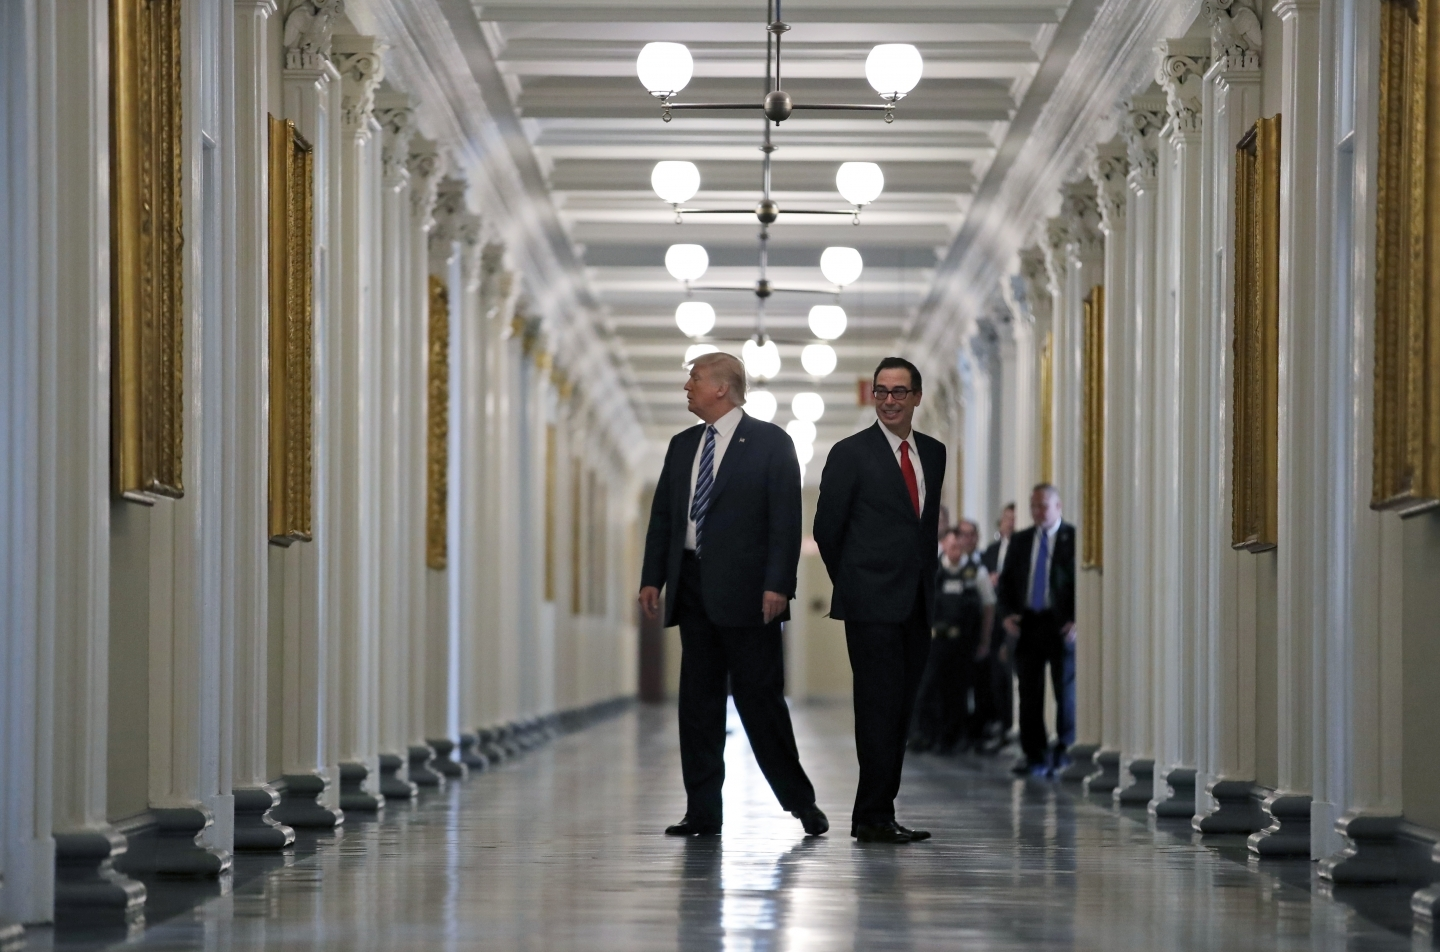 President Donald Trump walks with Treasury Secretary Steve Mnuchin as they look at portraits of the previous secretaries of the Treasury. (AP Photo/Alex Brandon)